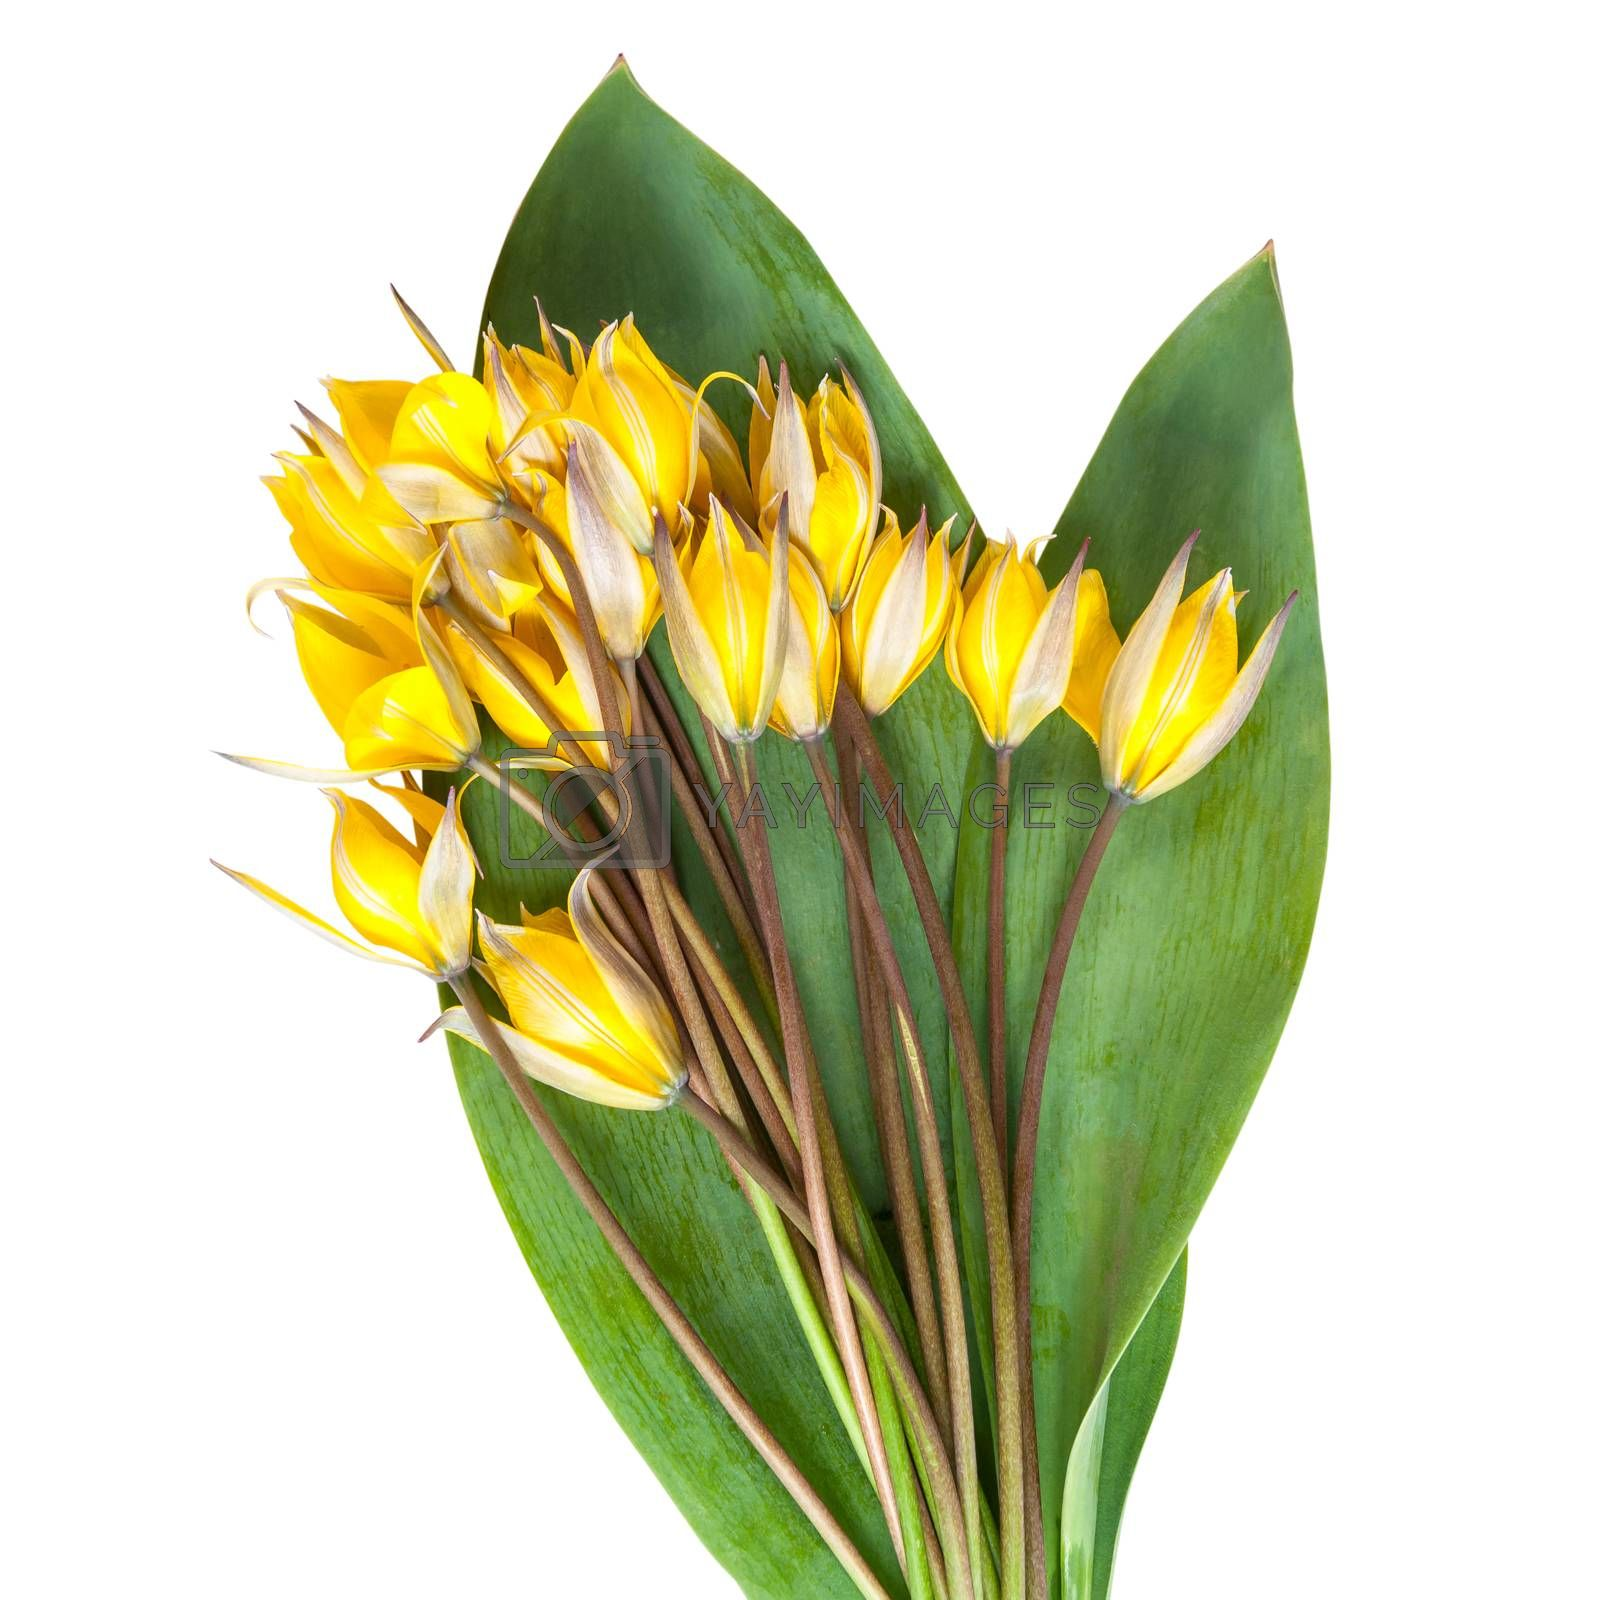 Wild yellow tulip flower with green leaves isolated on a white background, for design